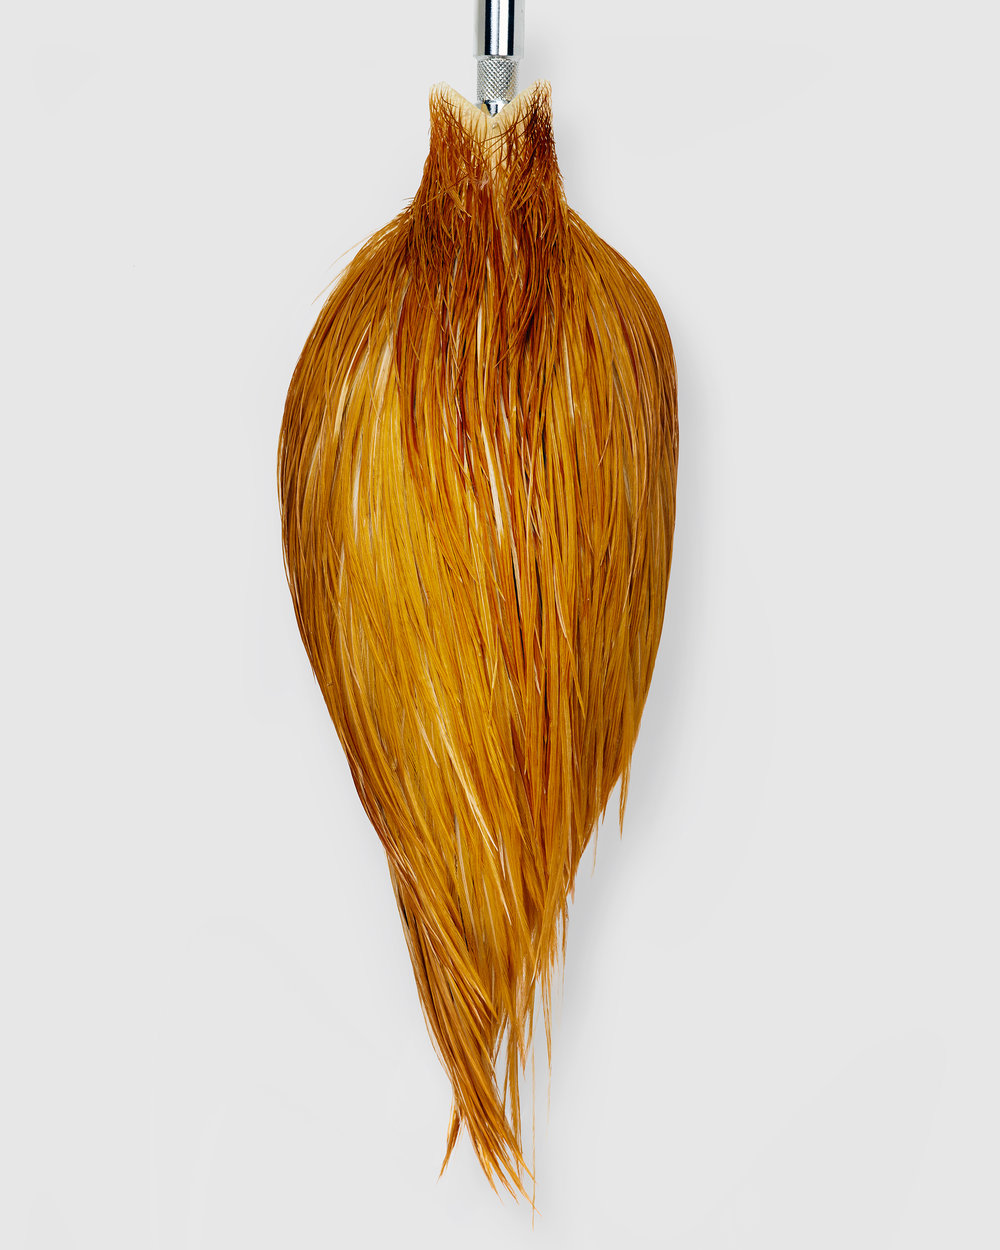 Whiting Farm's Hackle